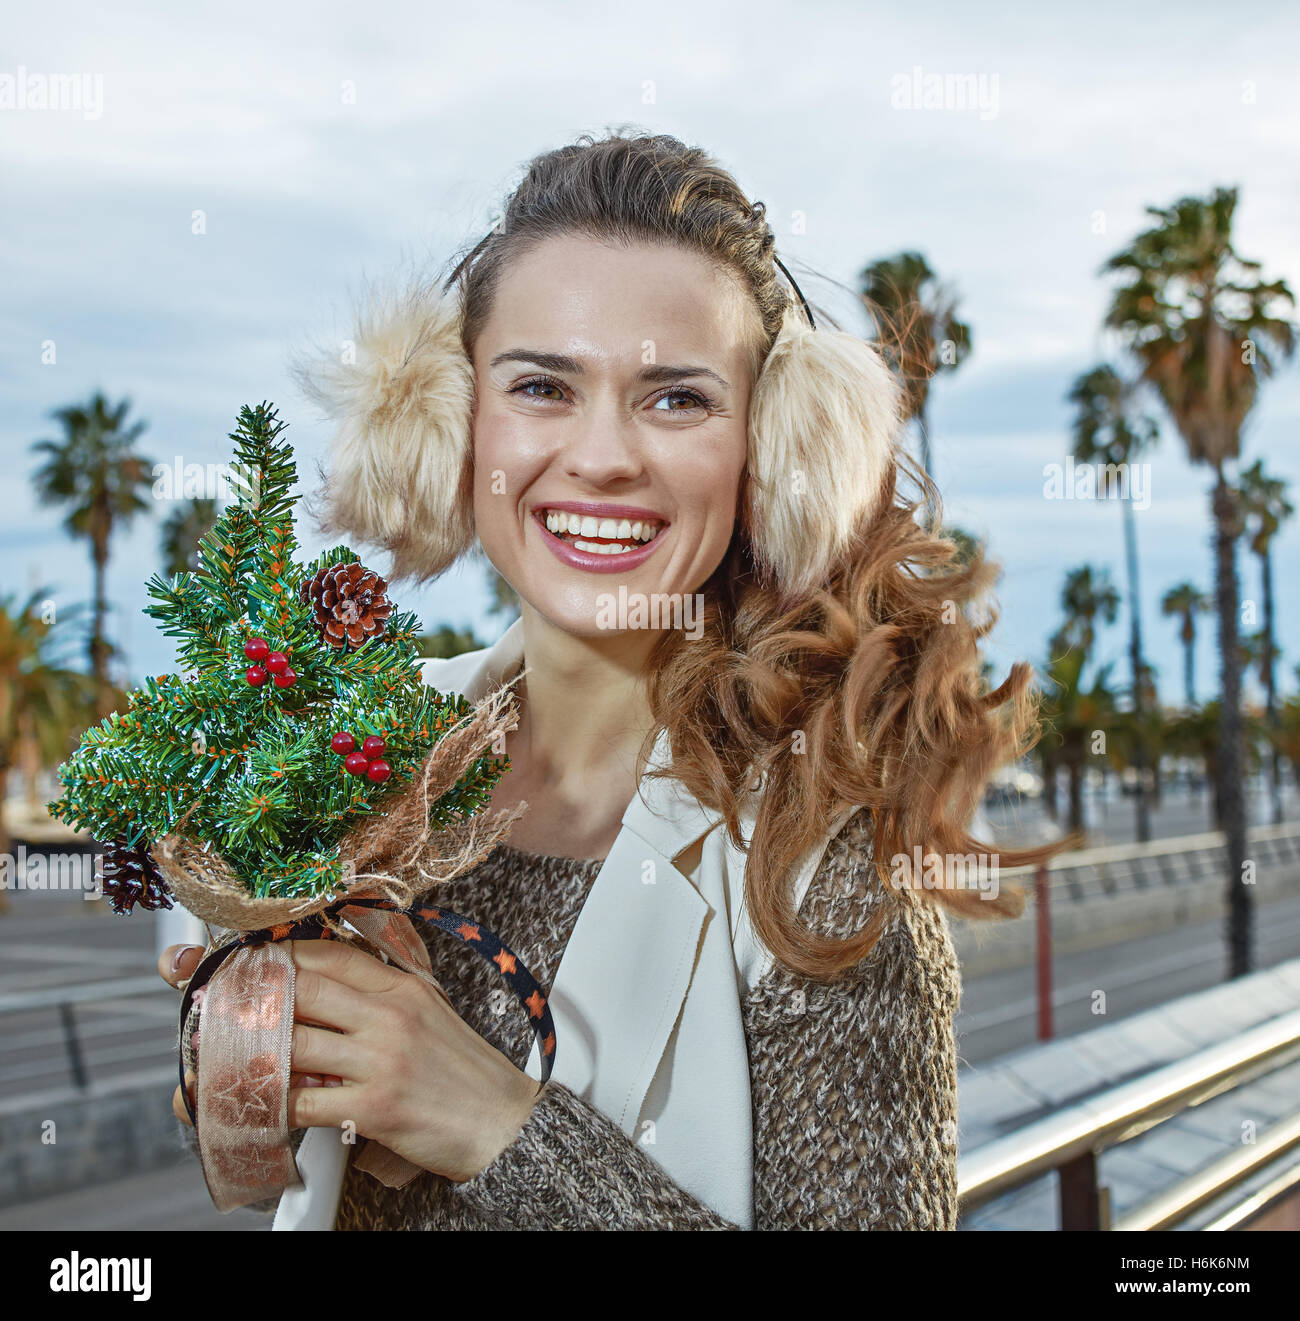 Winter wonderland in Barcelona at Christmas. Portrait of happy trendy traveller woman in Barcelona, Spain with a - Stock Image